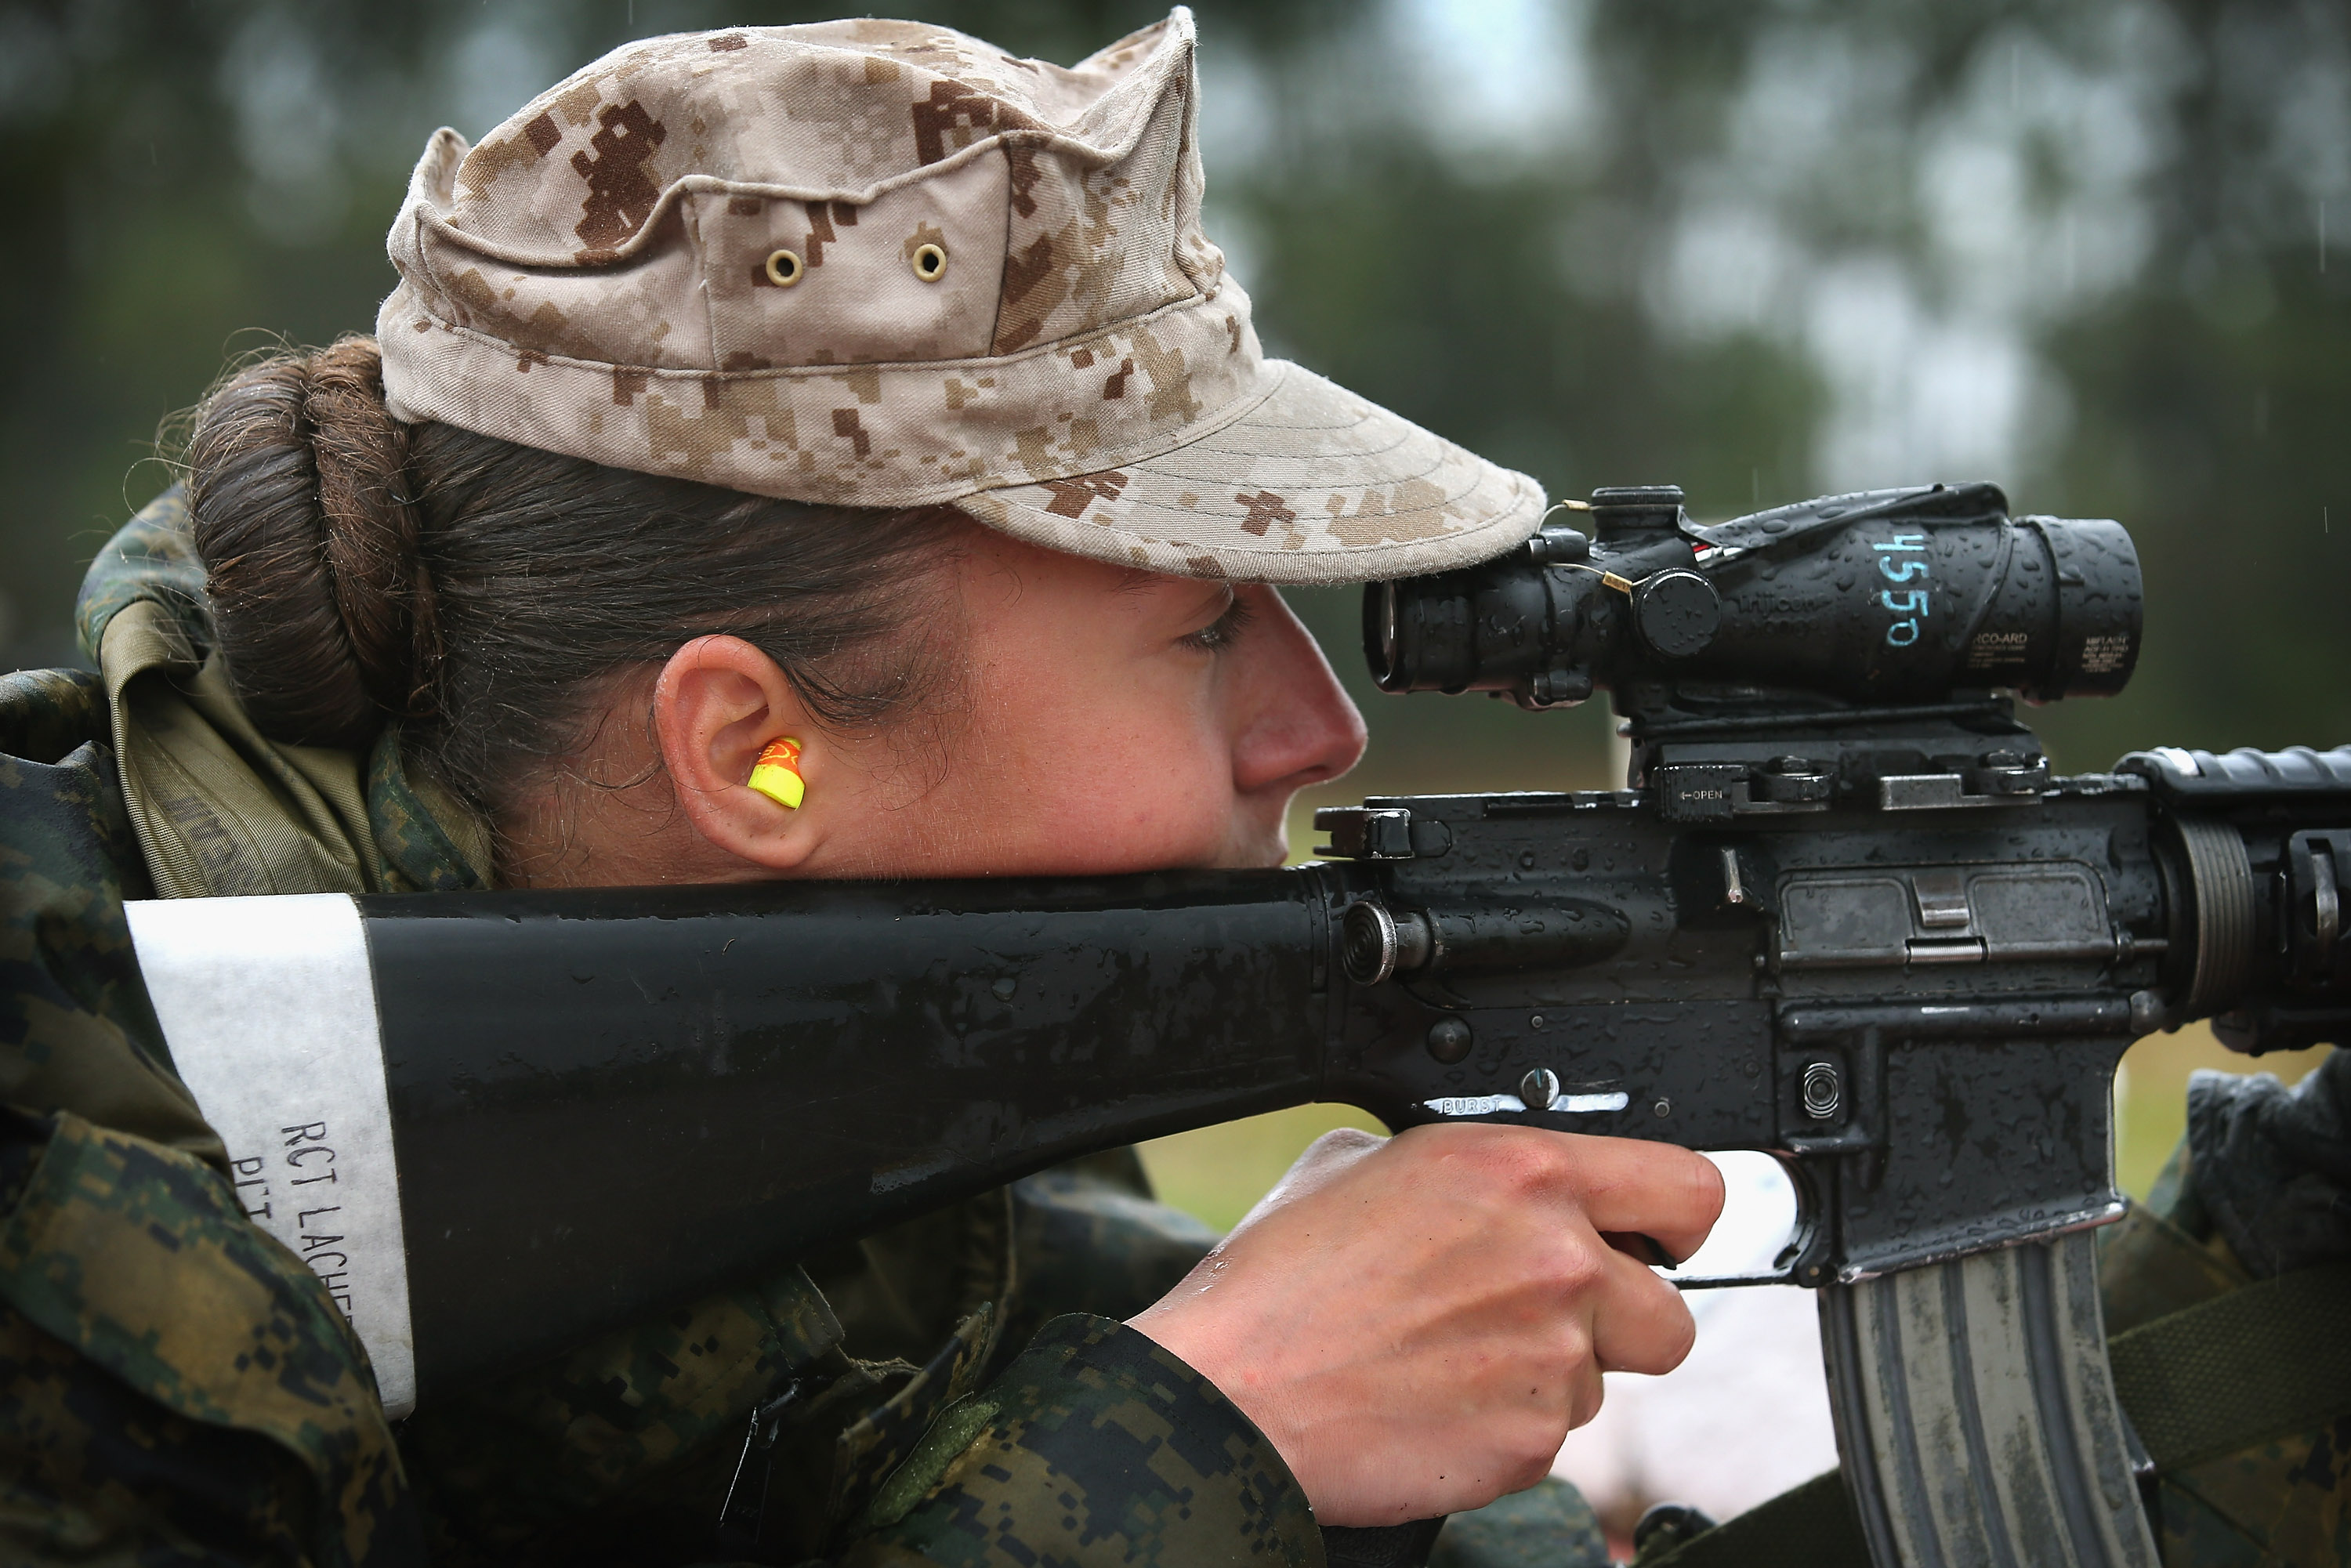 Marine recruit Cora Ann Lacher from Manuet, NY fires on the rifle range during boot camp on Feb. 25, 2013.